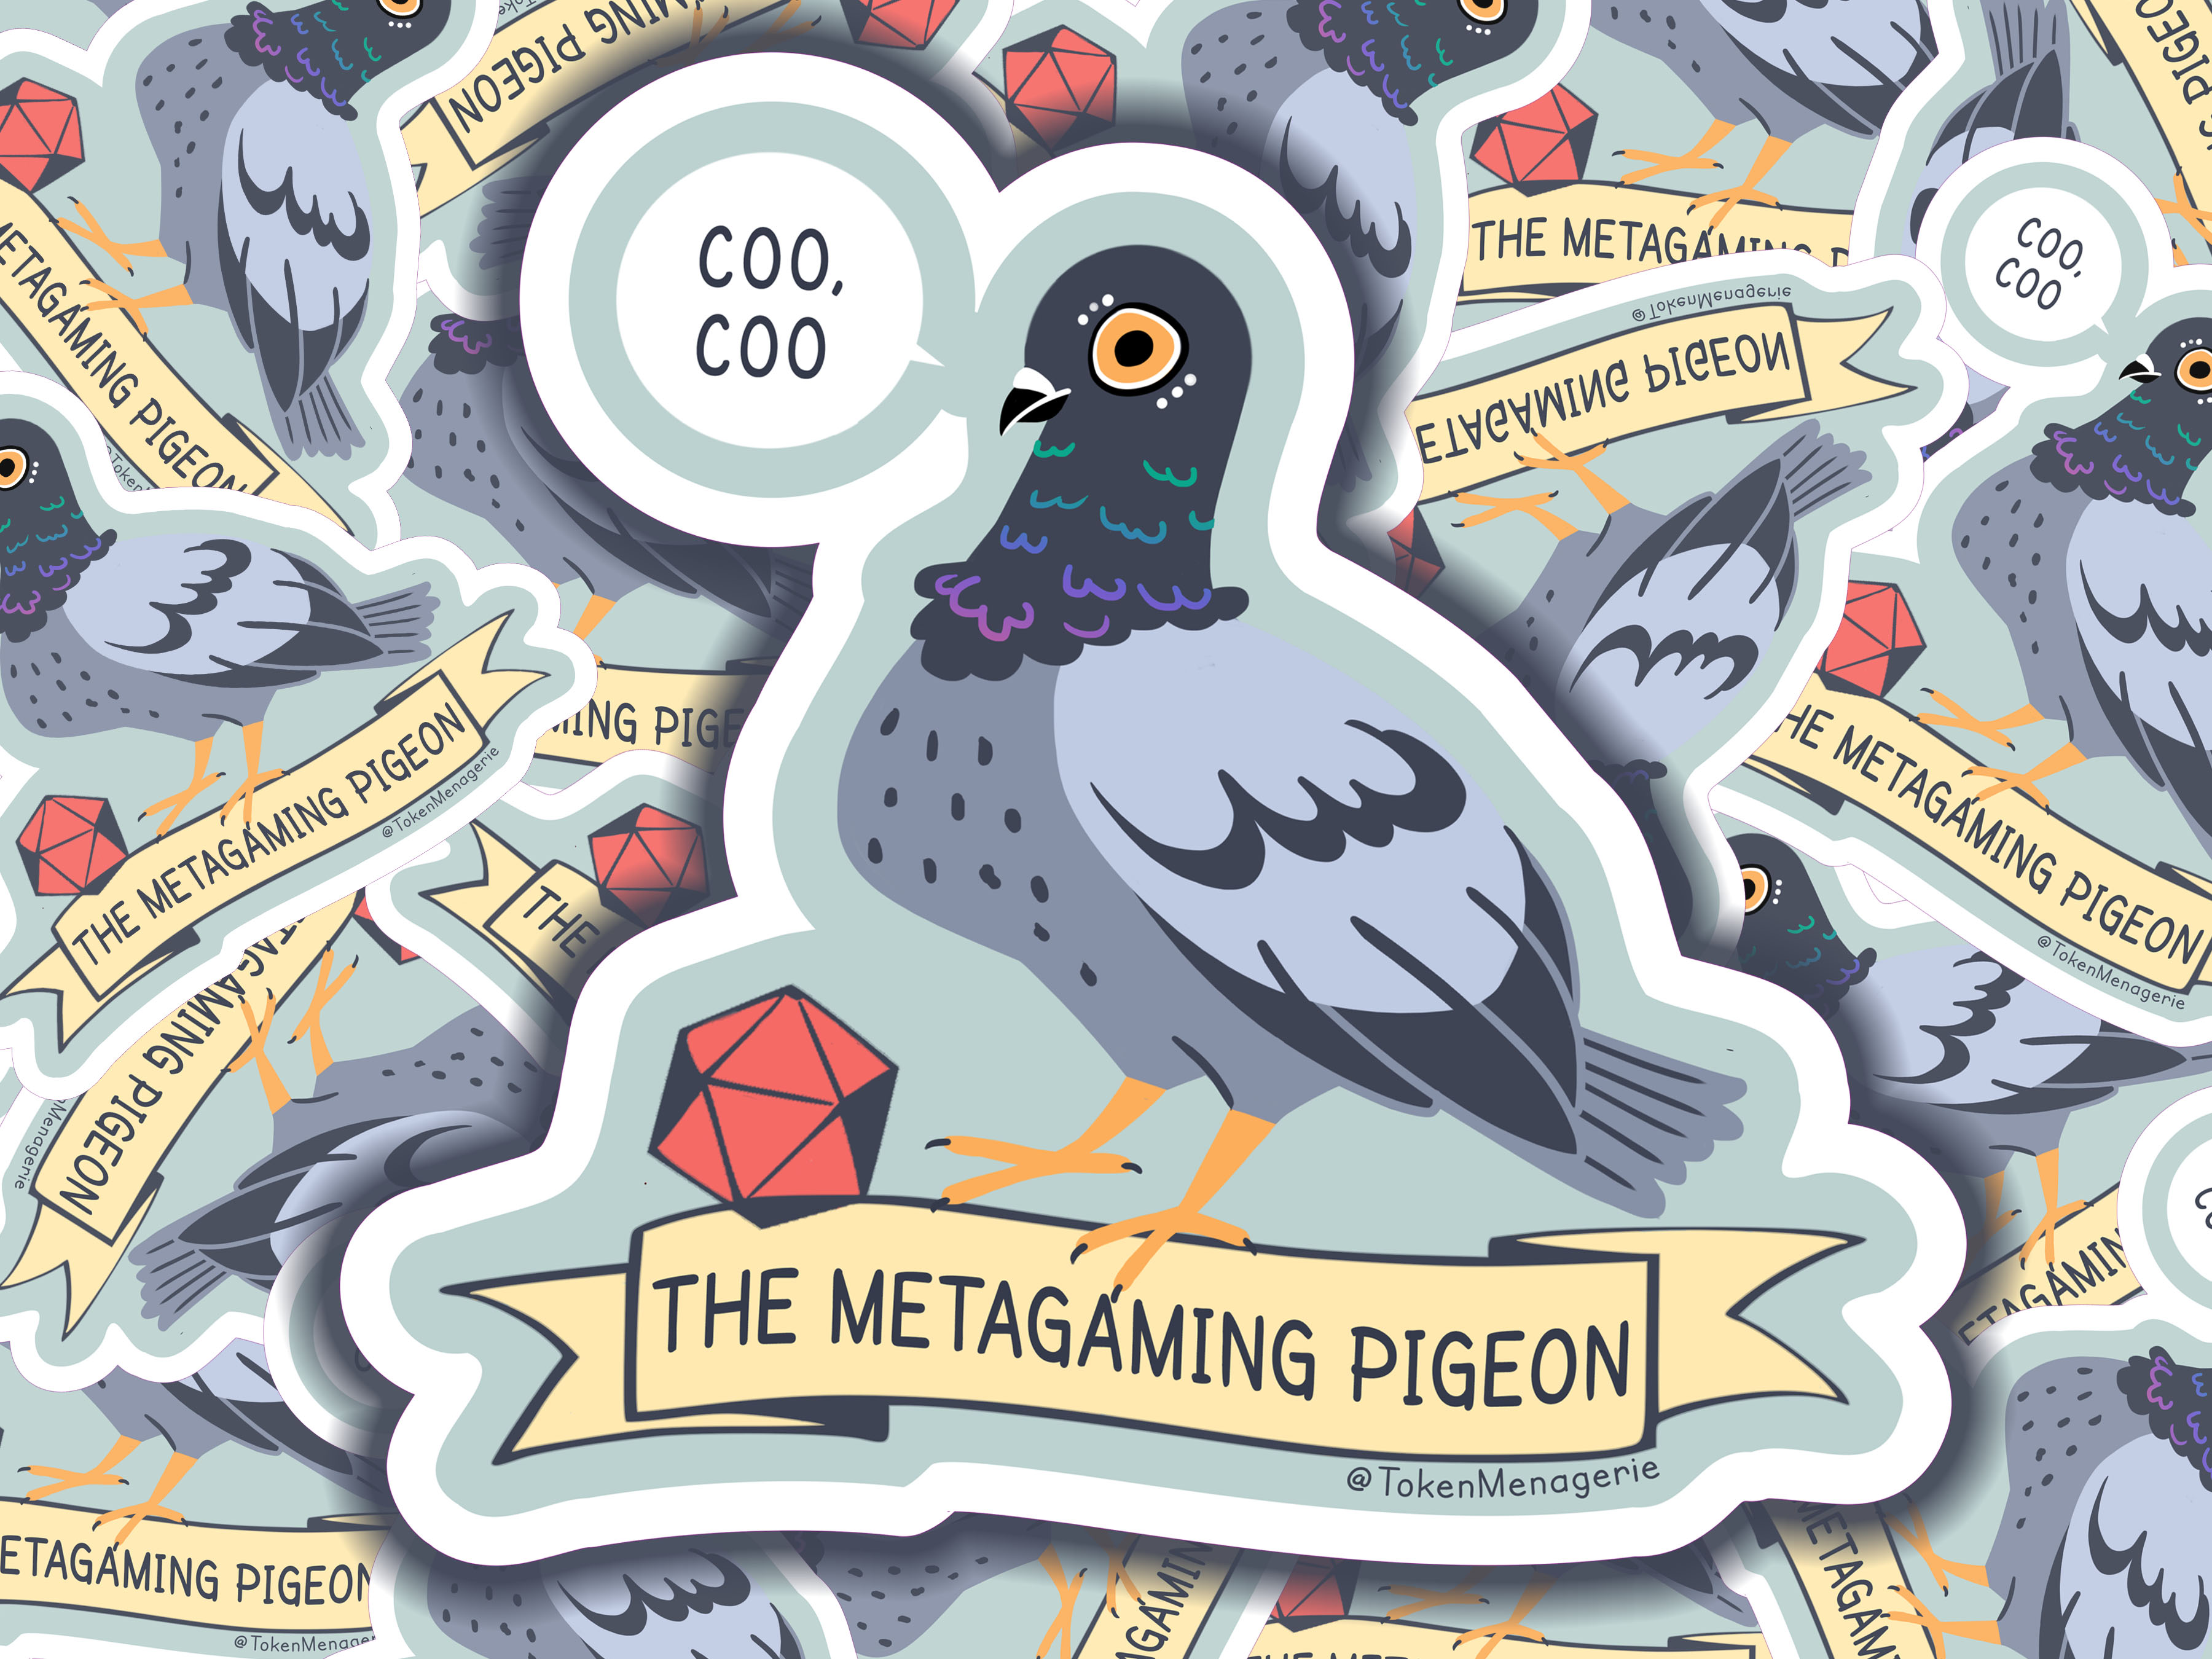 The Metagaming Pigeon